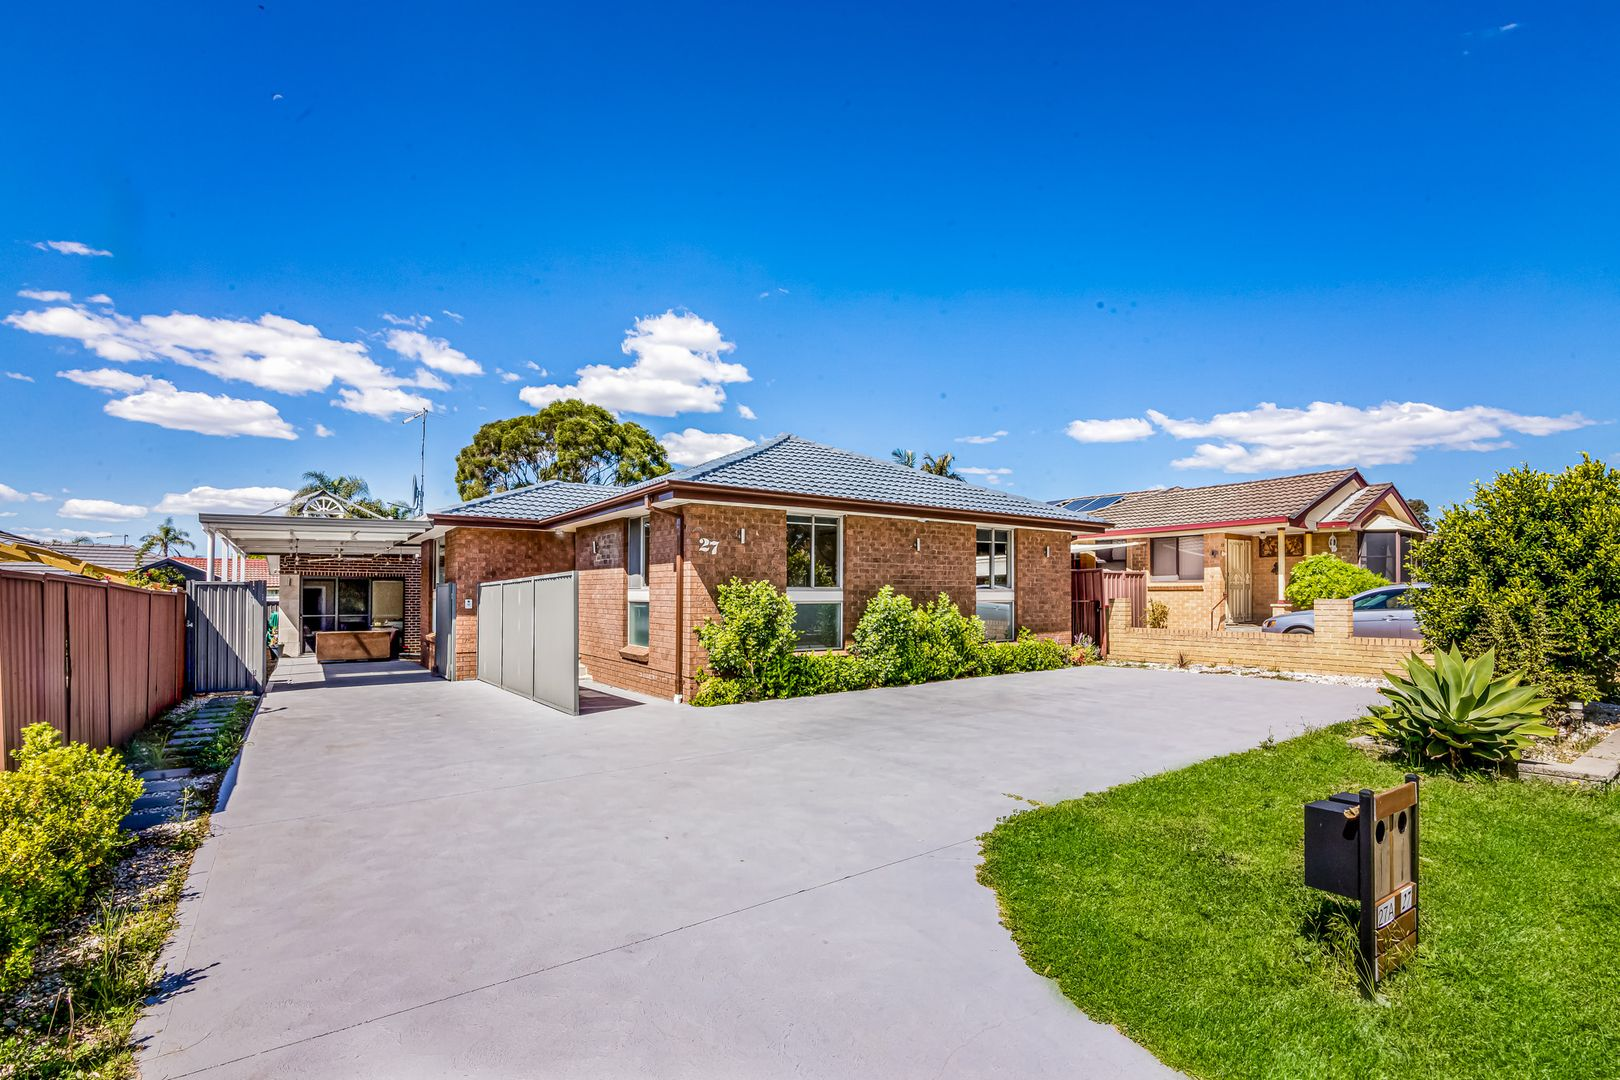 27 & 27A Emerson Street, Wetherill Park NSW 2164, Image 0